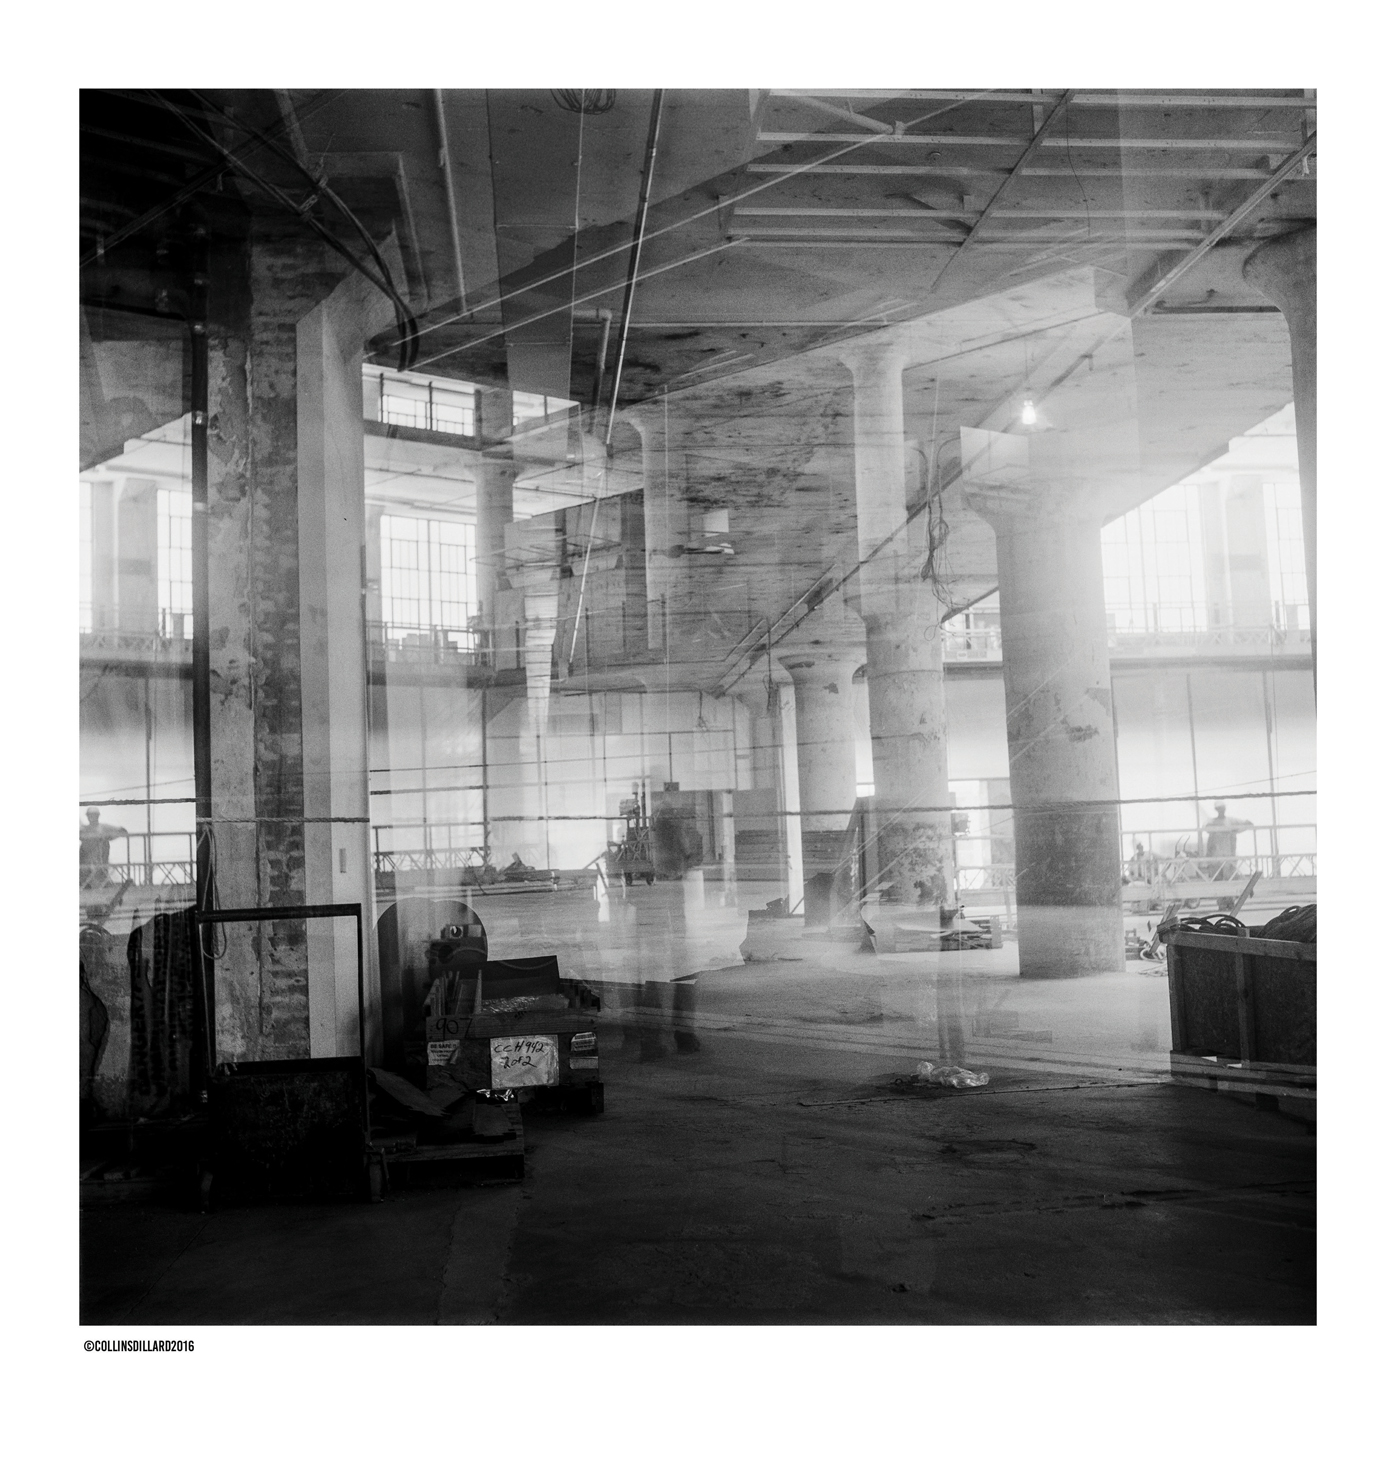 Other worldly: You can see here how large the columns are throughout the building. The columns are as sound as they were the day they were built.